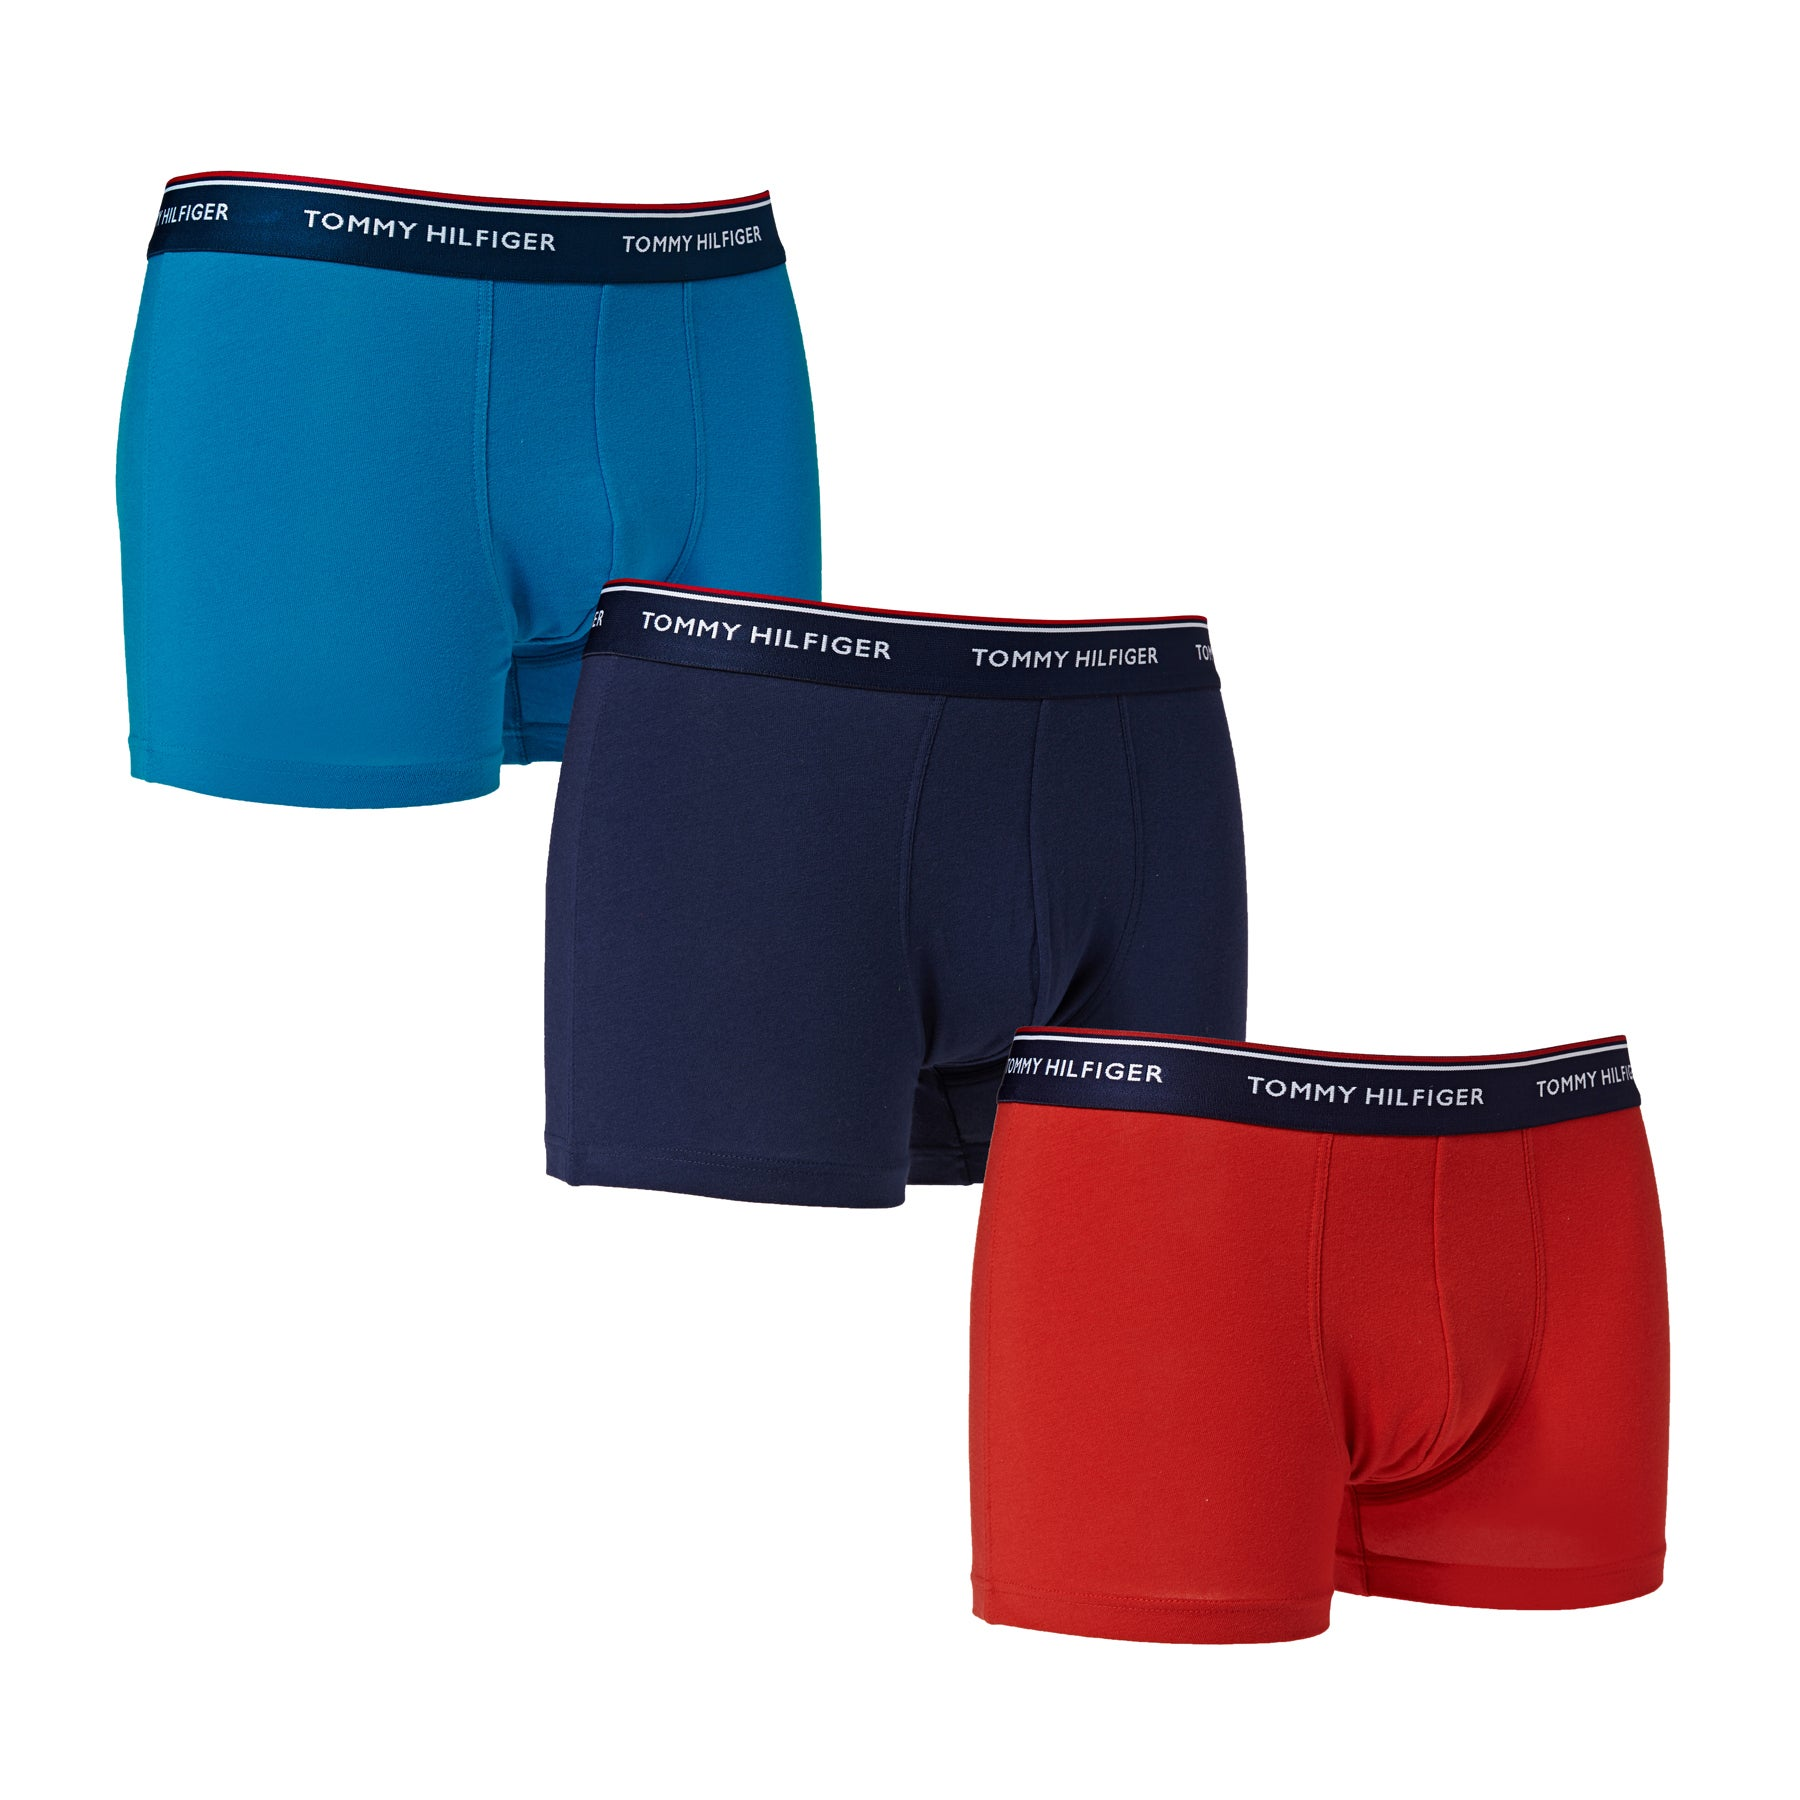 Caleçons Tommy Hilfiger 3 Pack - Mykonos Blue Pompeian Red Peacot